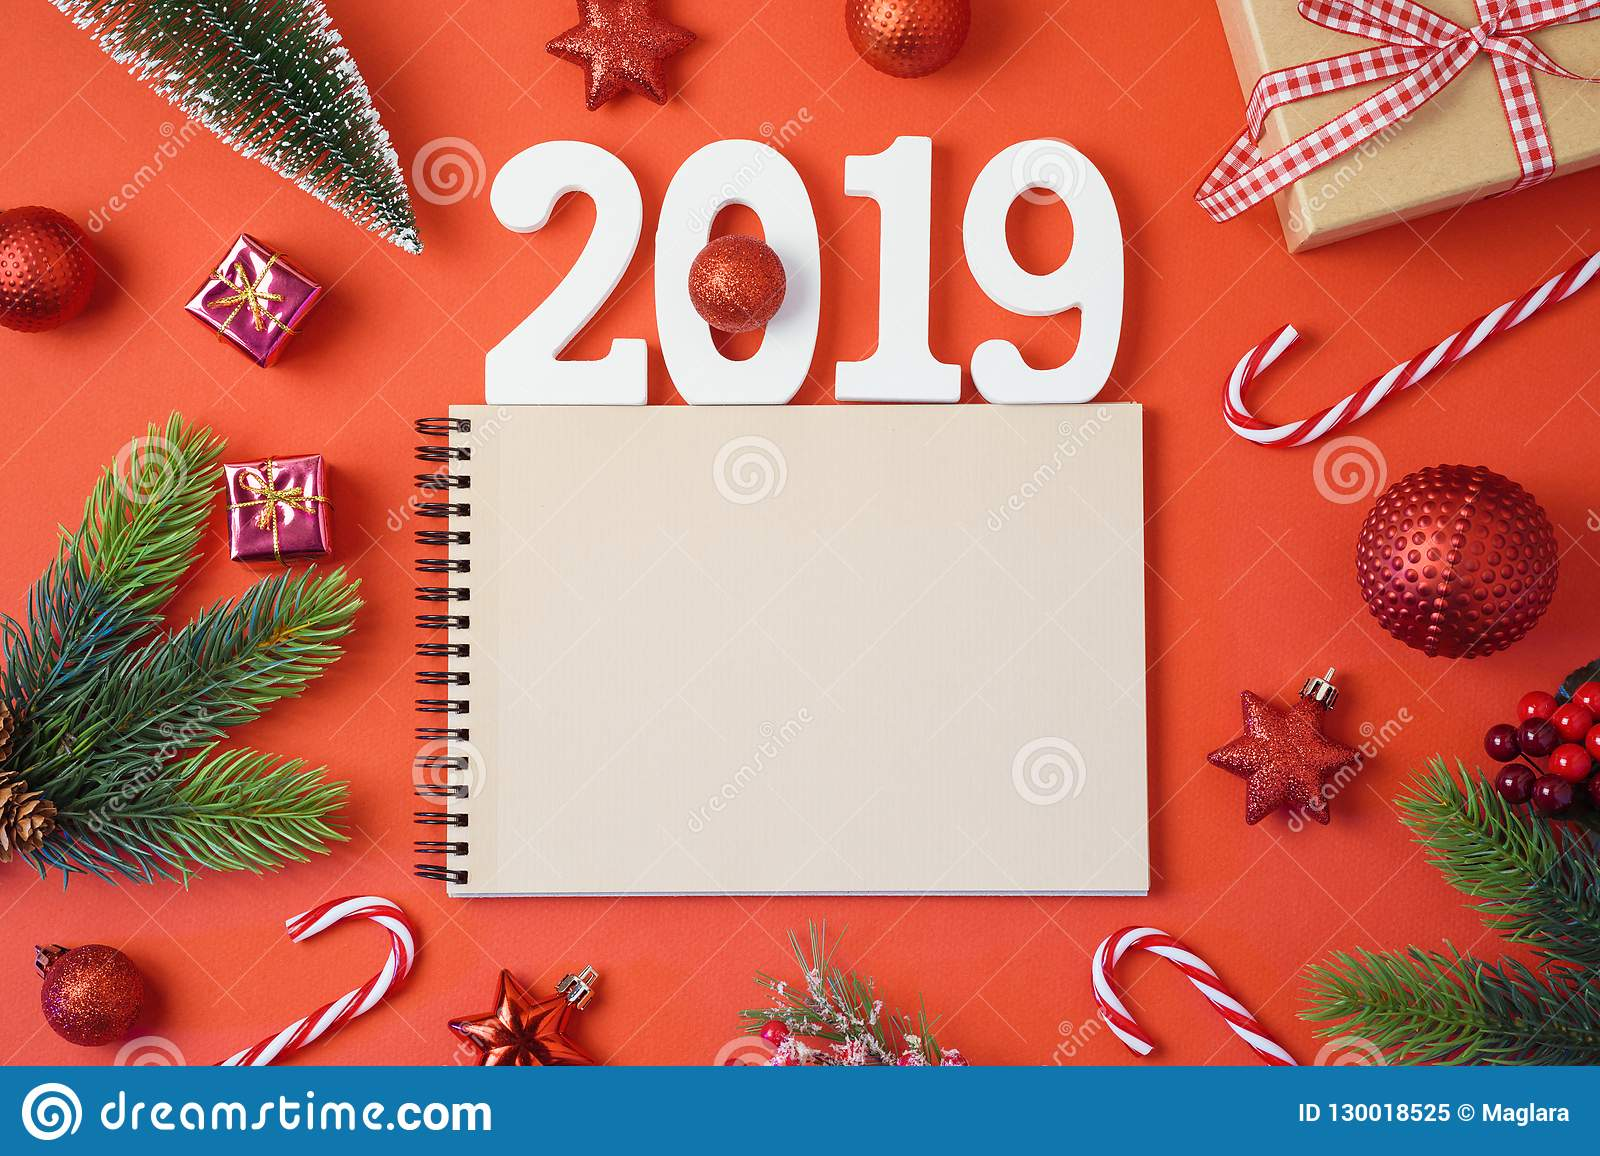 Christmas holiday background with notebook, 2019 new year and de